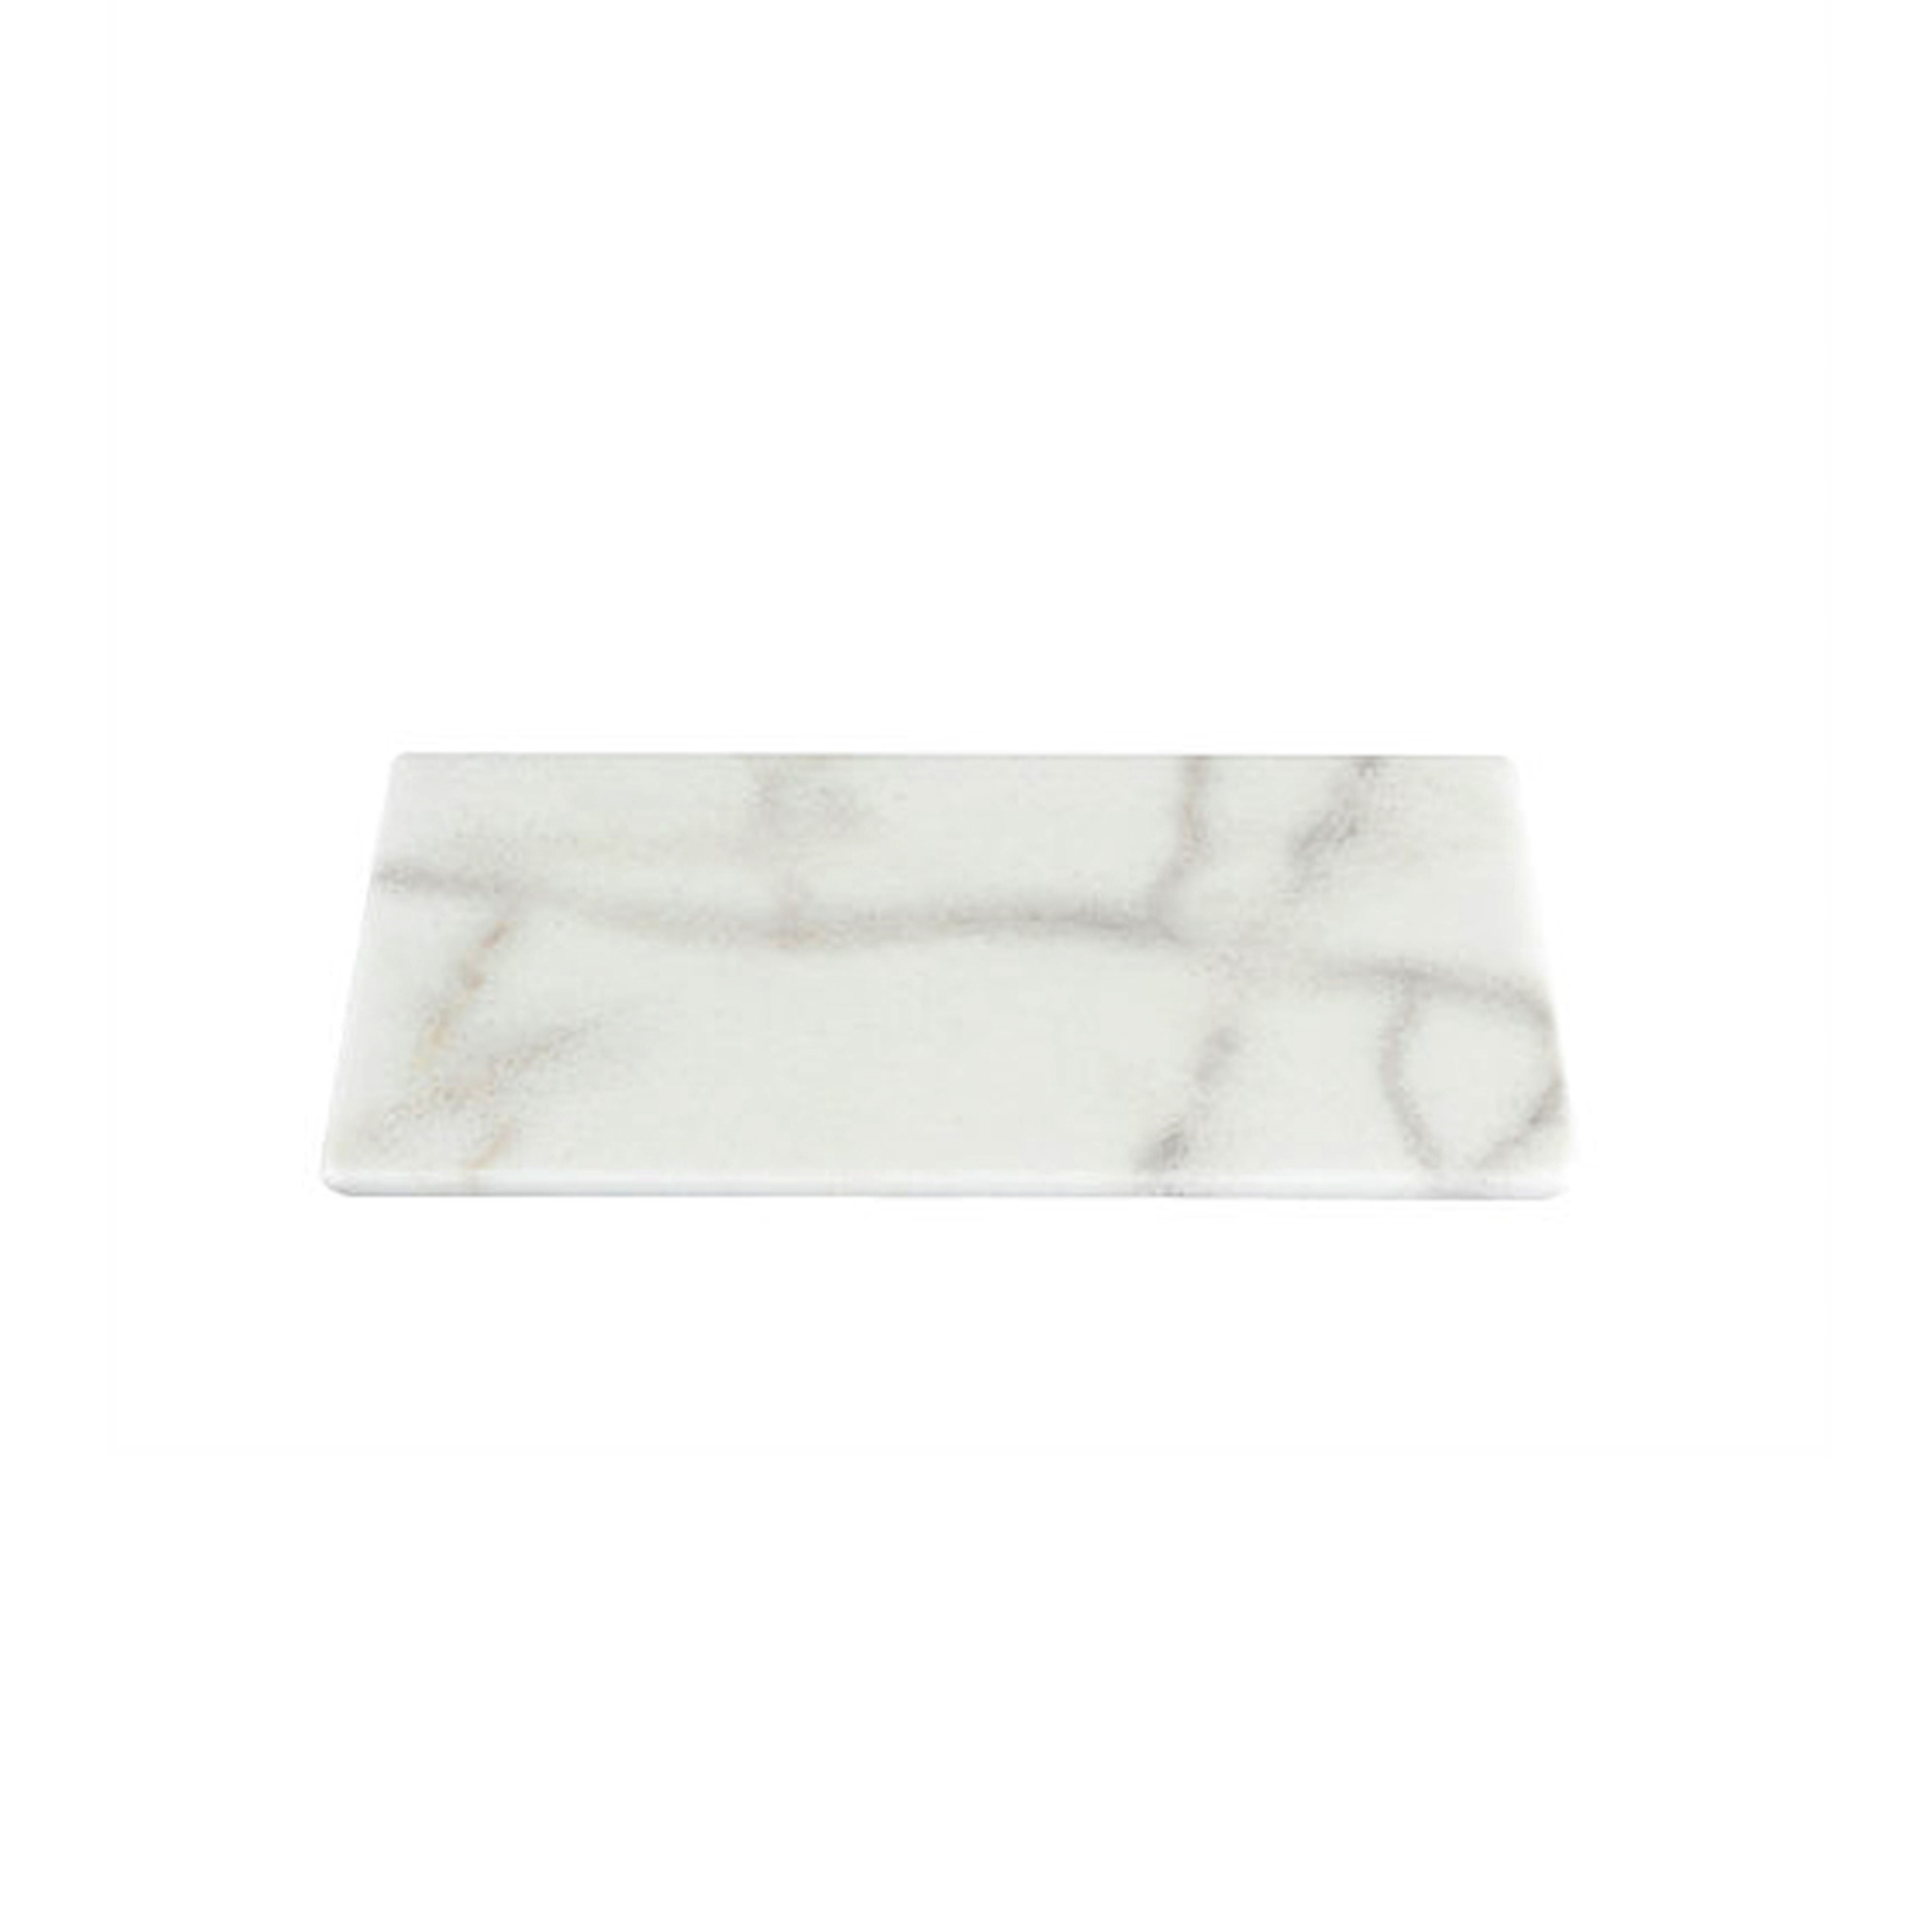 Stone Marble Board 15 (White)